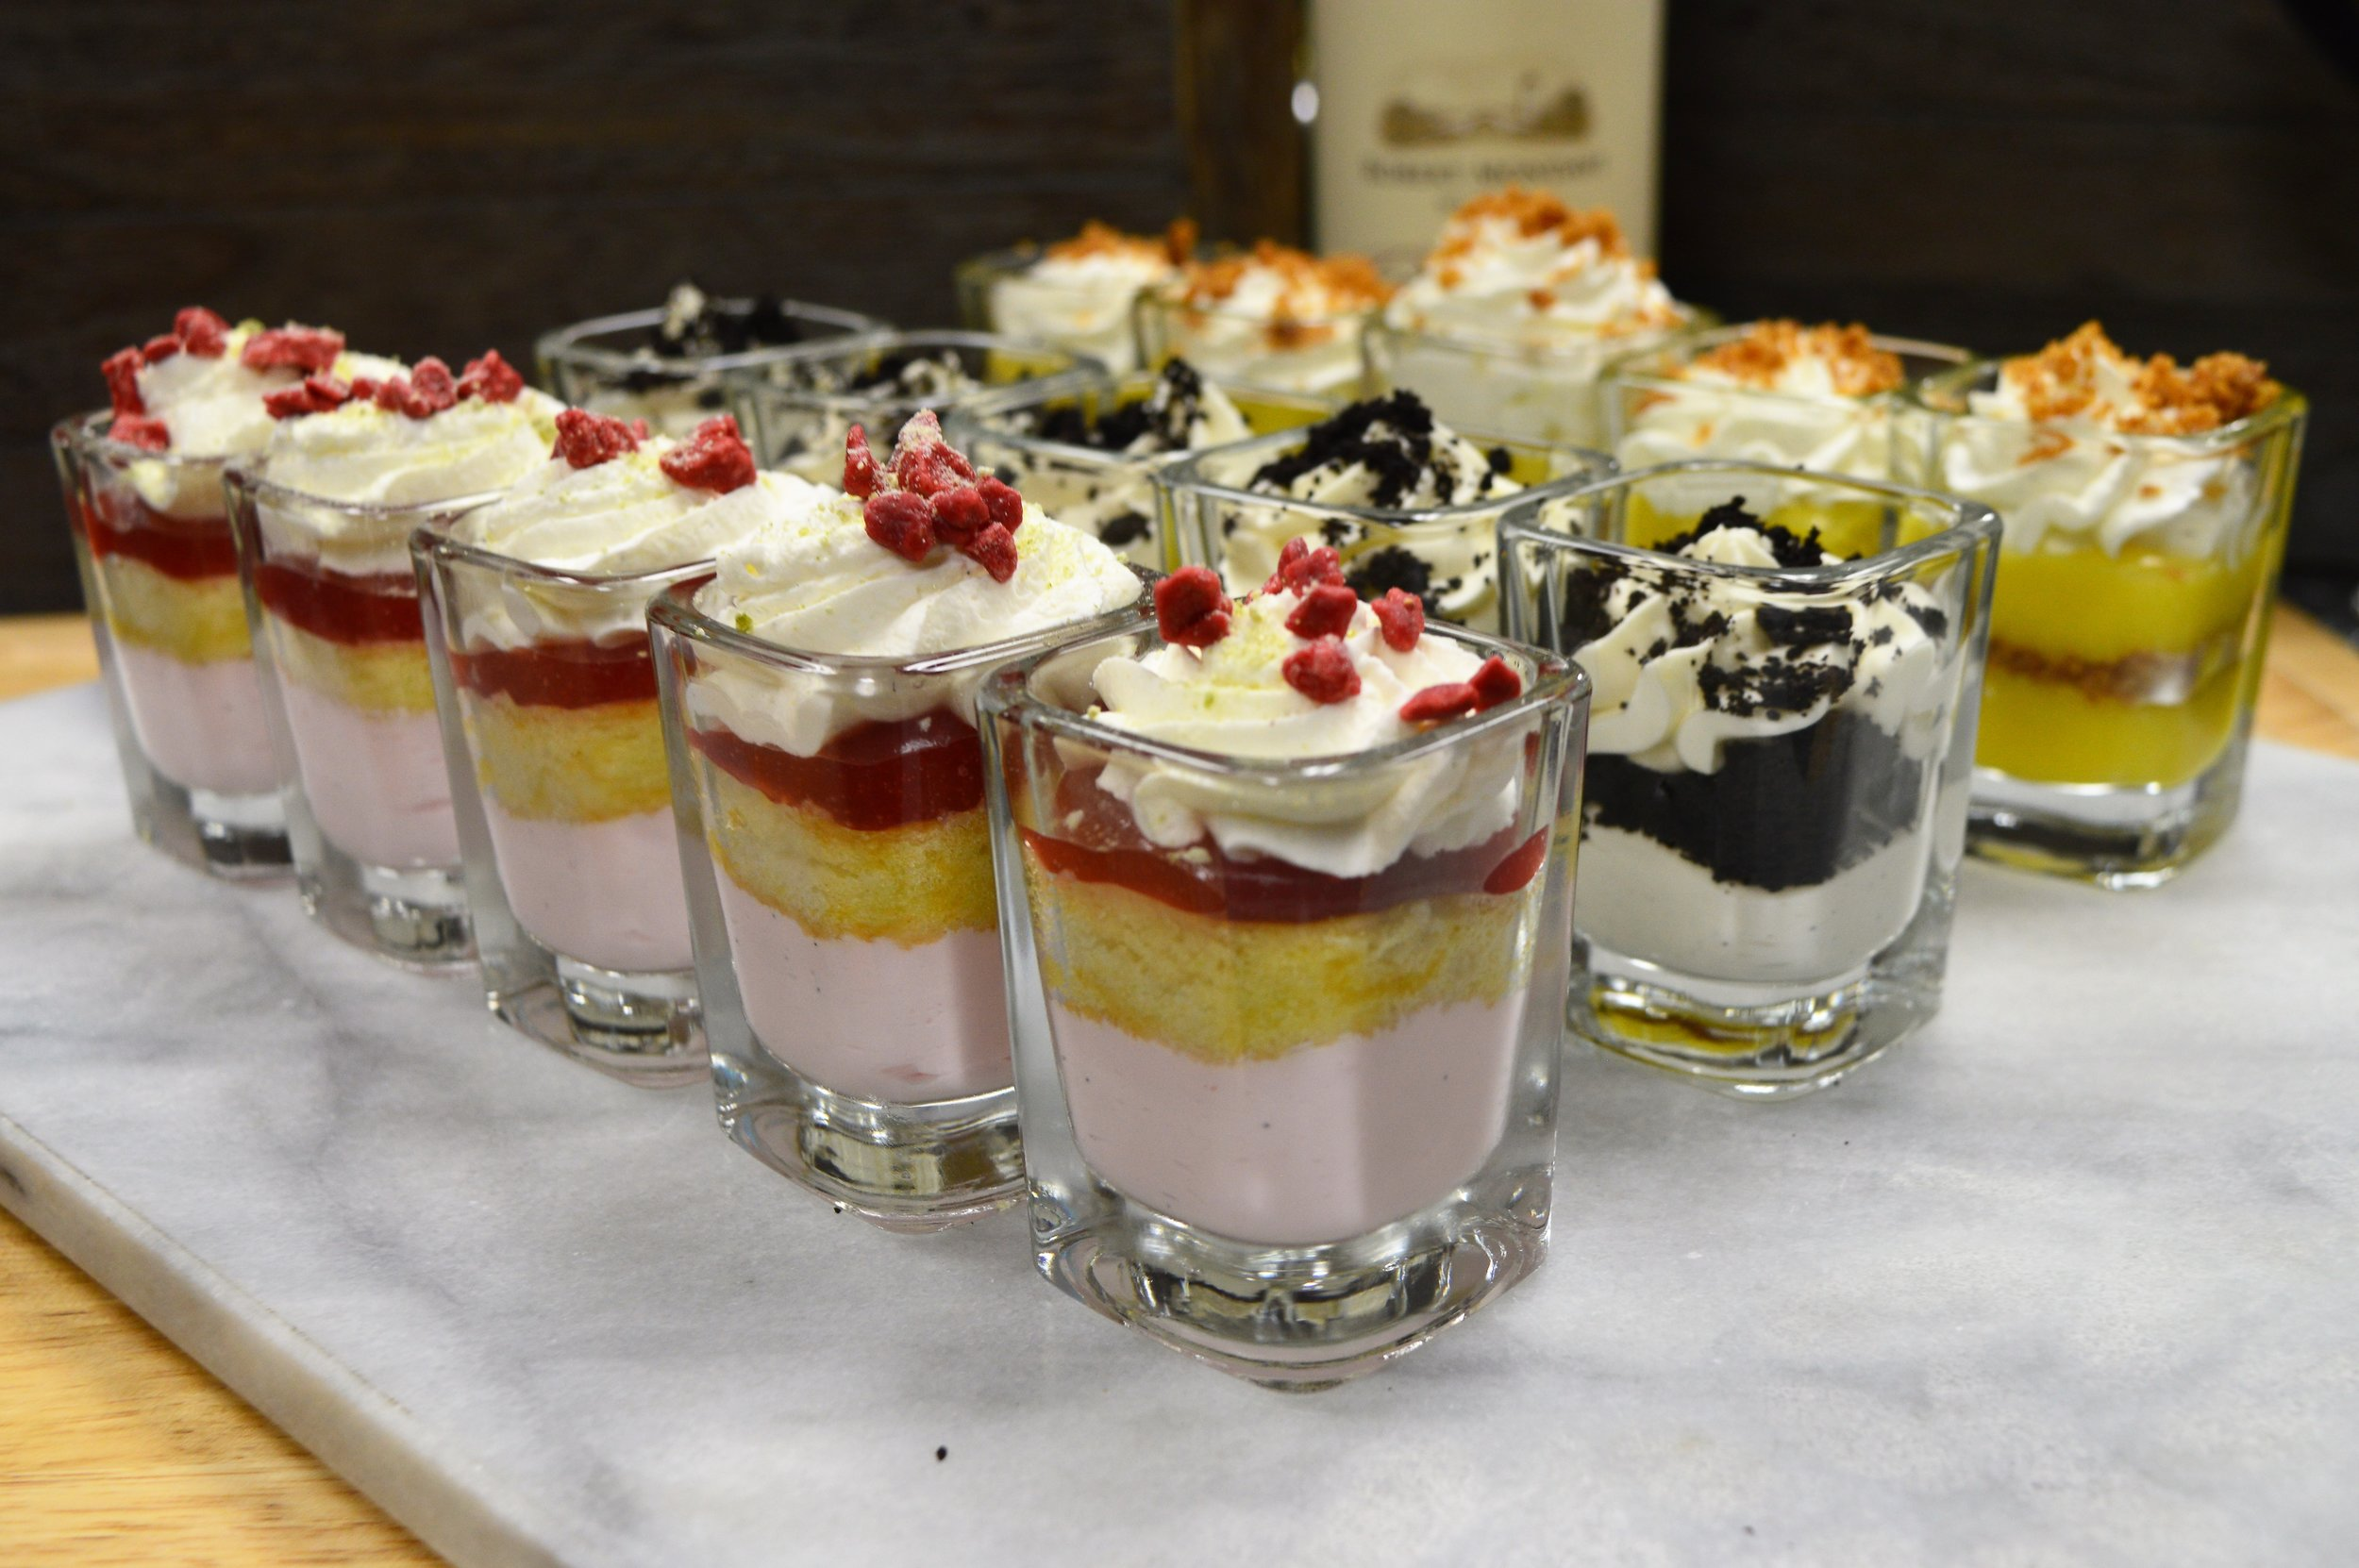 Shot Glass Desserts Strawberry Shortcake Cookies and Cream and Keylime Pie